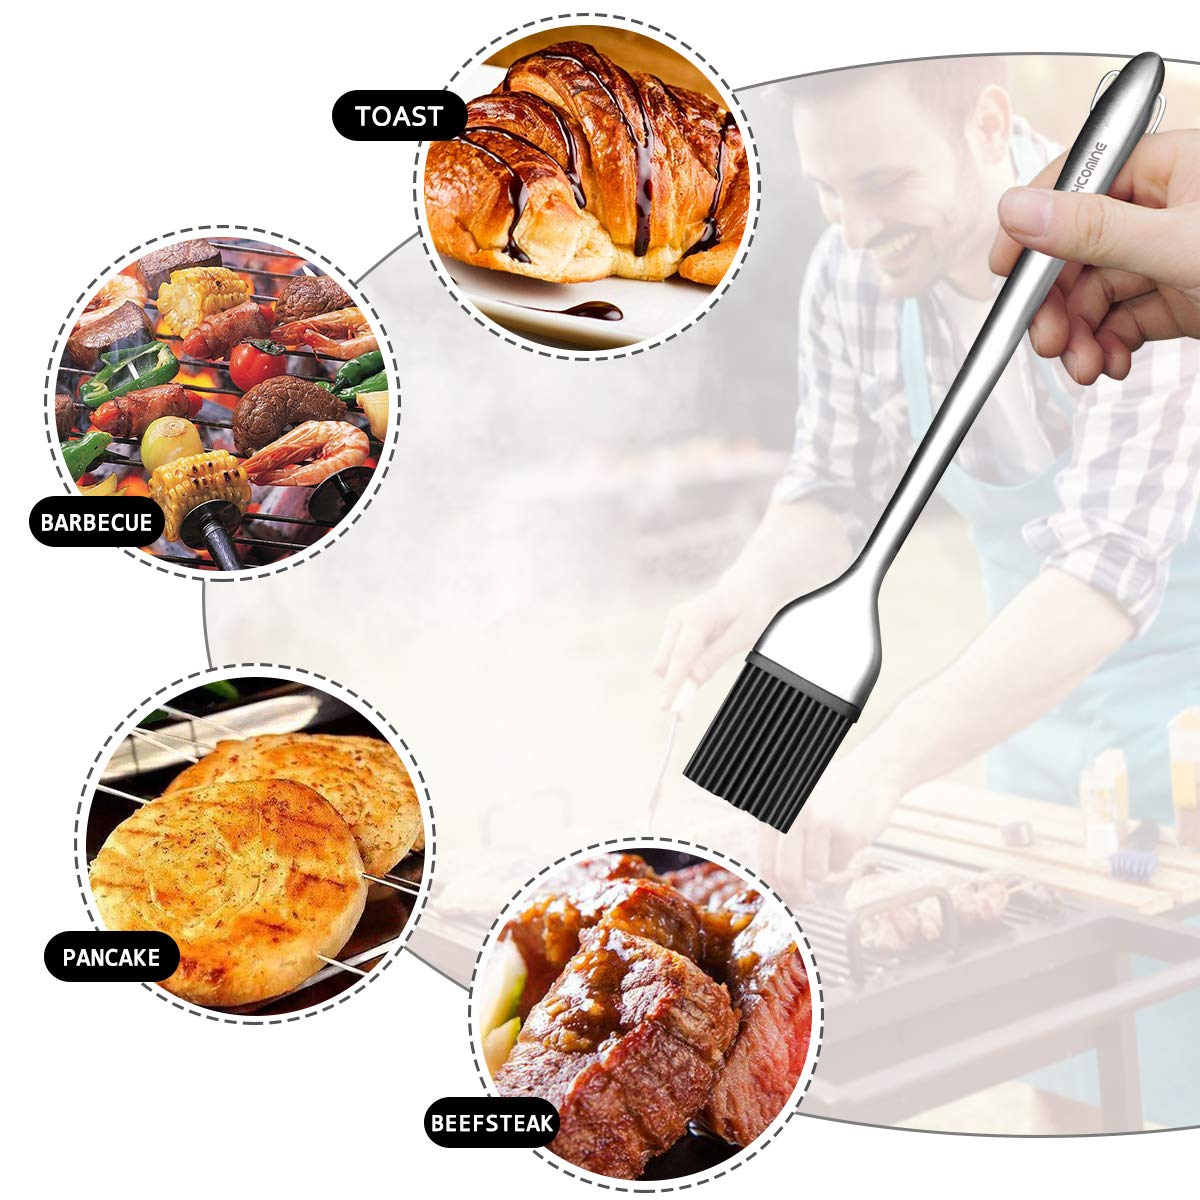 Hcomine Set of 5 Basting Brush, Pastry Silicone/Grill/BBQ/Sauce/Butter/Oil Brush with Flexible Heatproof Stainless Steel Handle 12'' and 7.9'',Food Grade FDA Approved, Dishwasher Safe, Bristle Free. by Hcomine (Image #3)